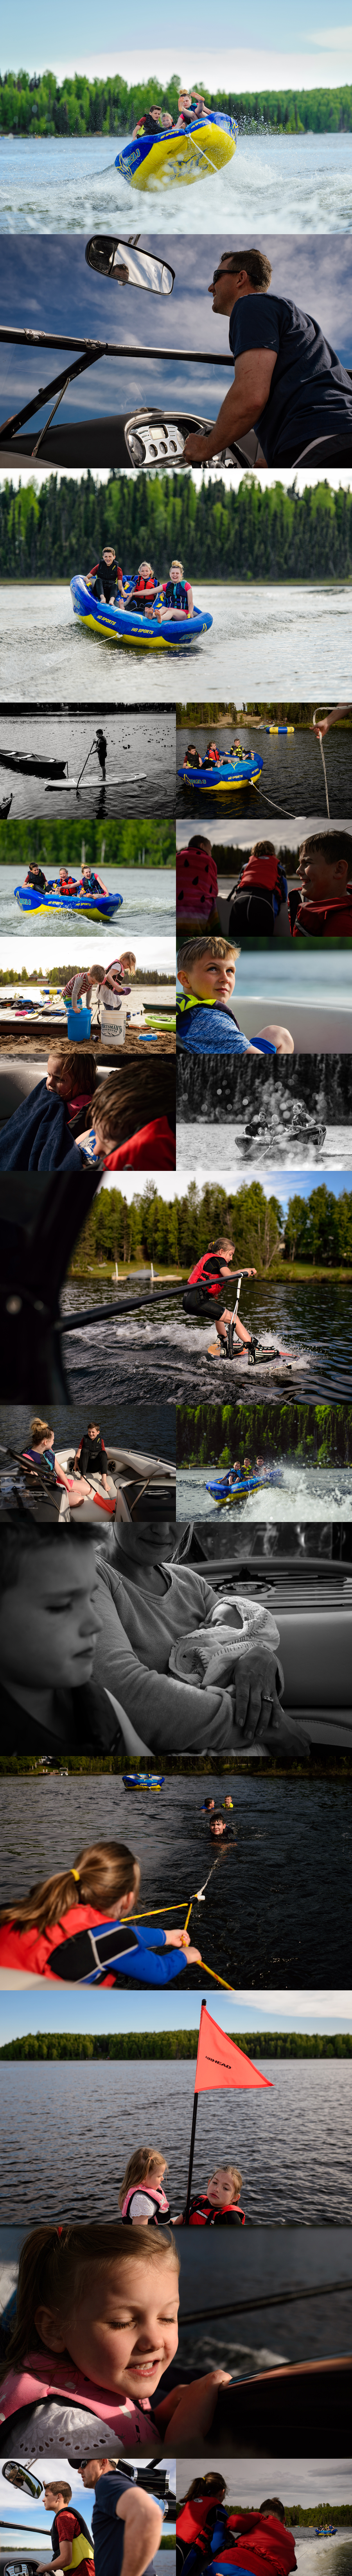 documentary-anchorage-family-playing-on-a-lake.jpg